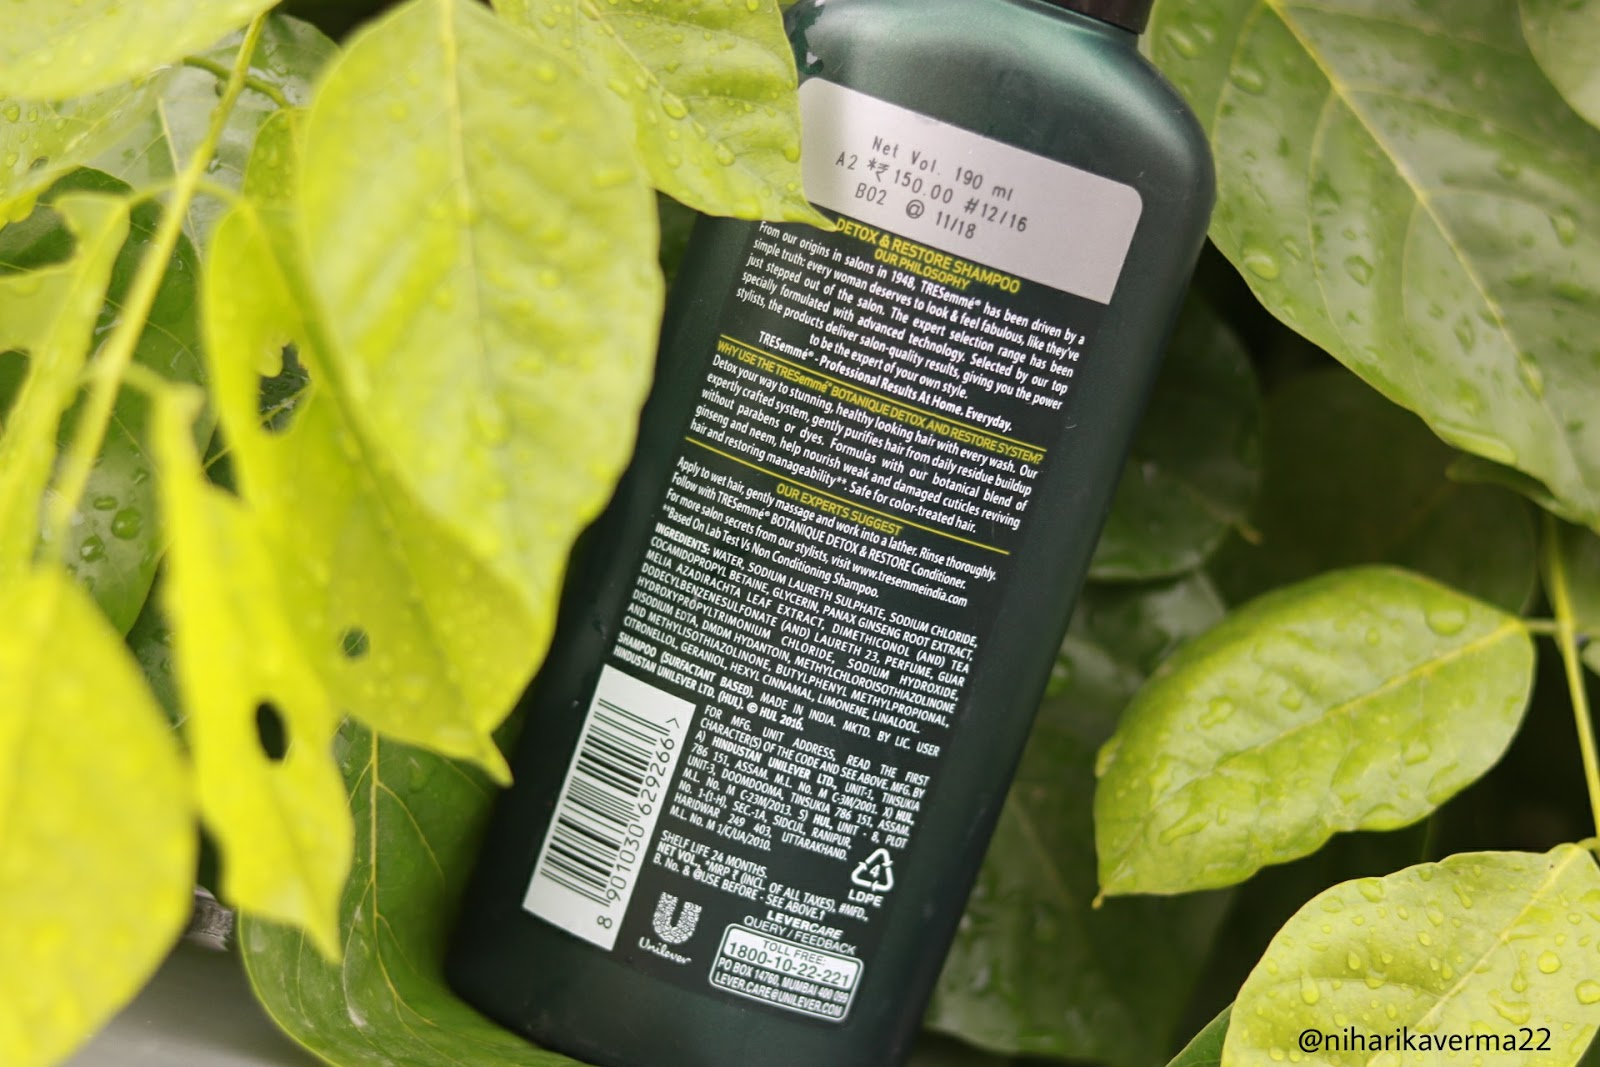 Tresemme Botanique Detox and Restore Shampoo Review